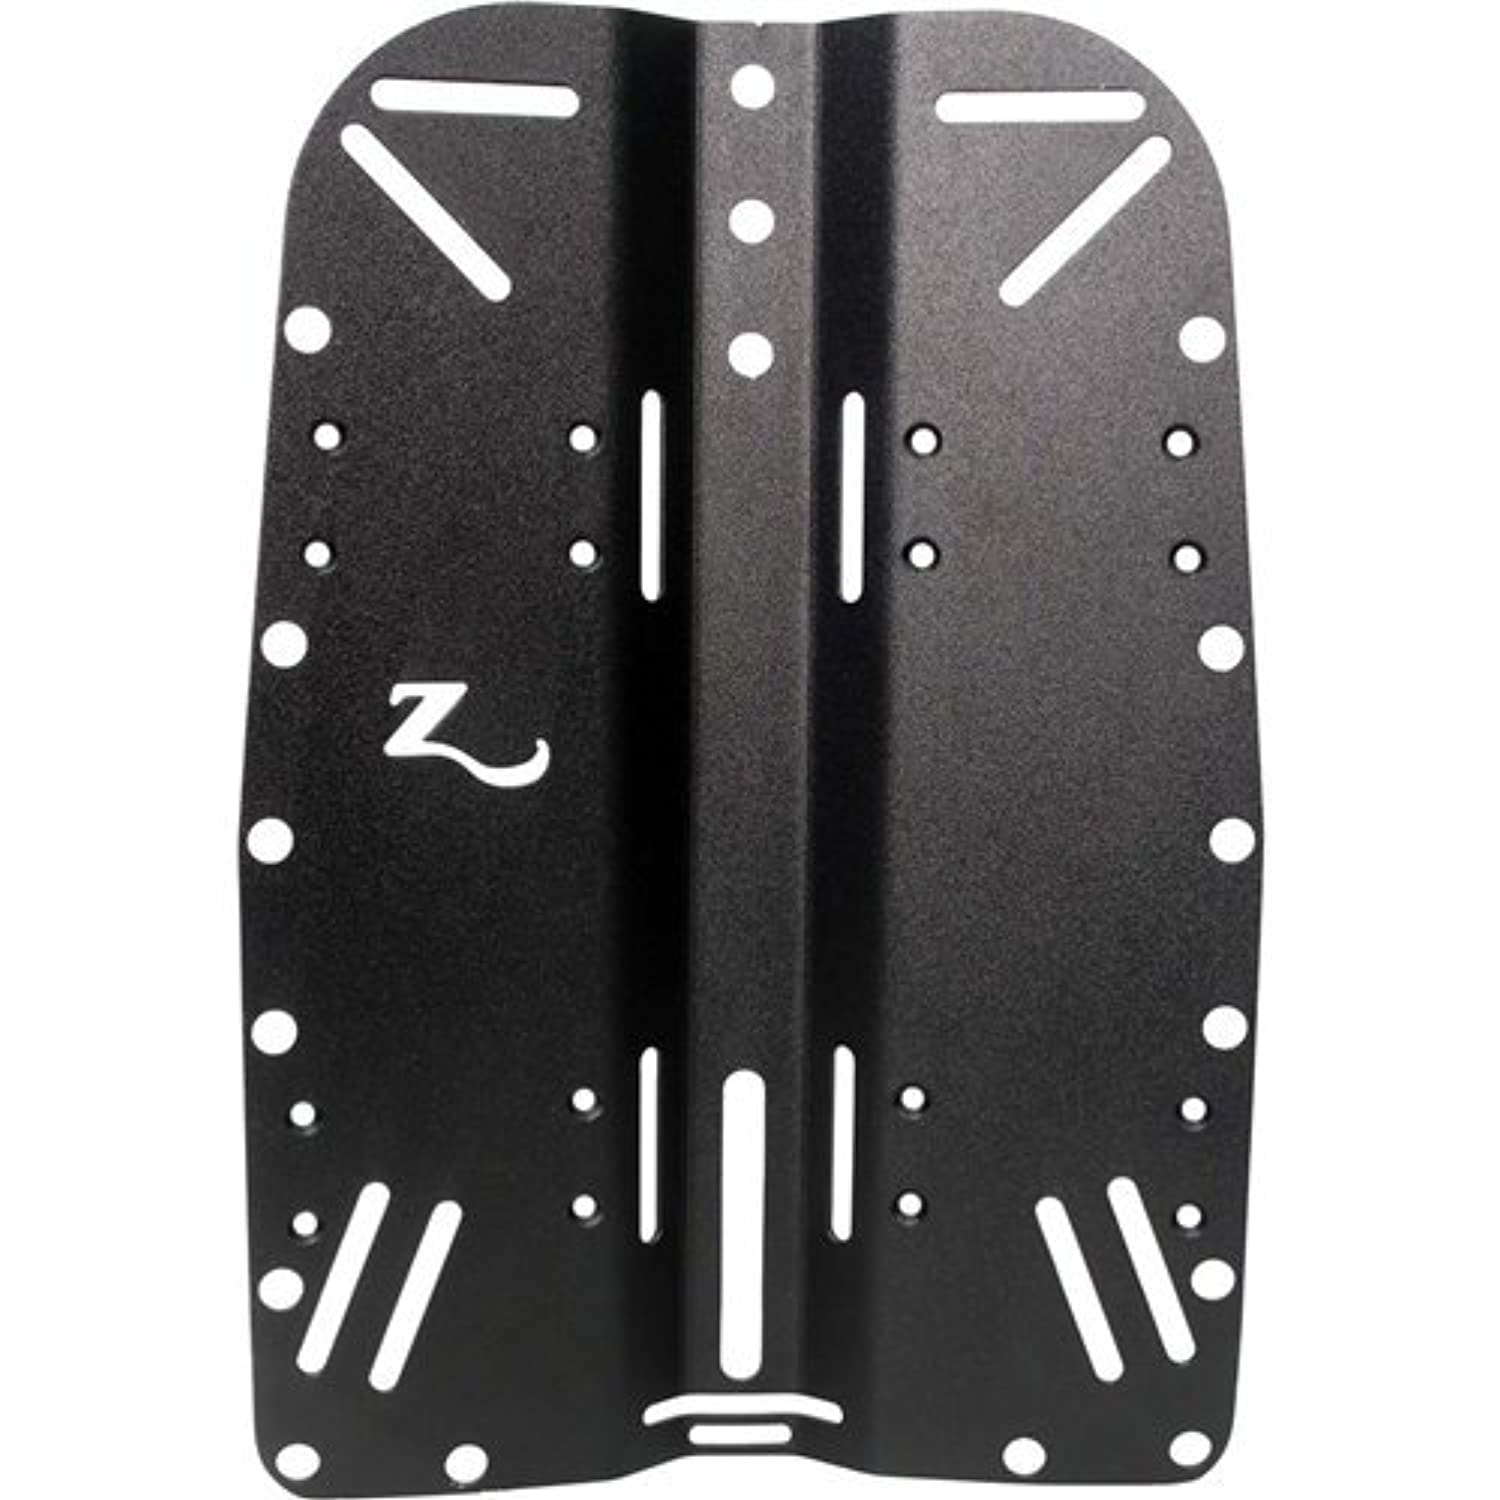 Zeagle Black Anodized Aluminum Backplate by Zeagle